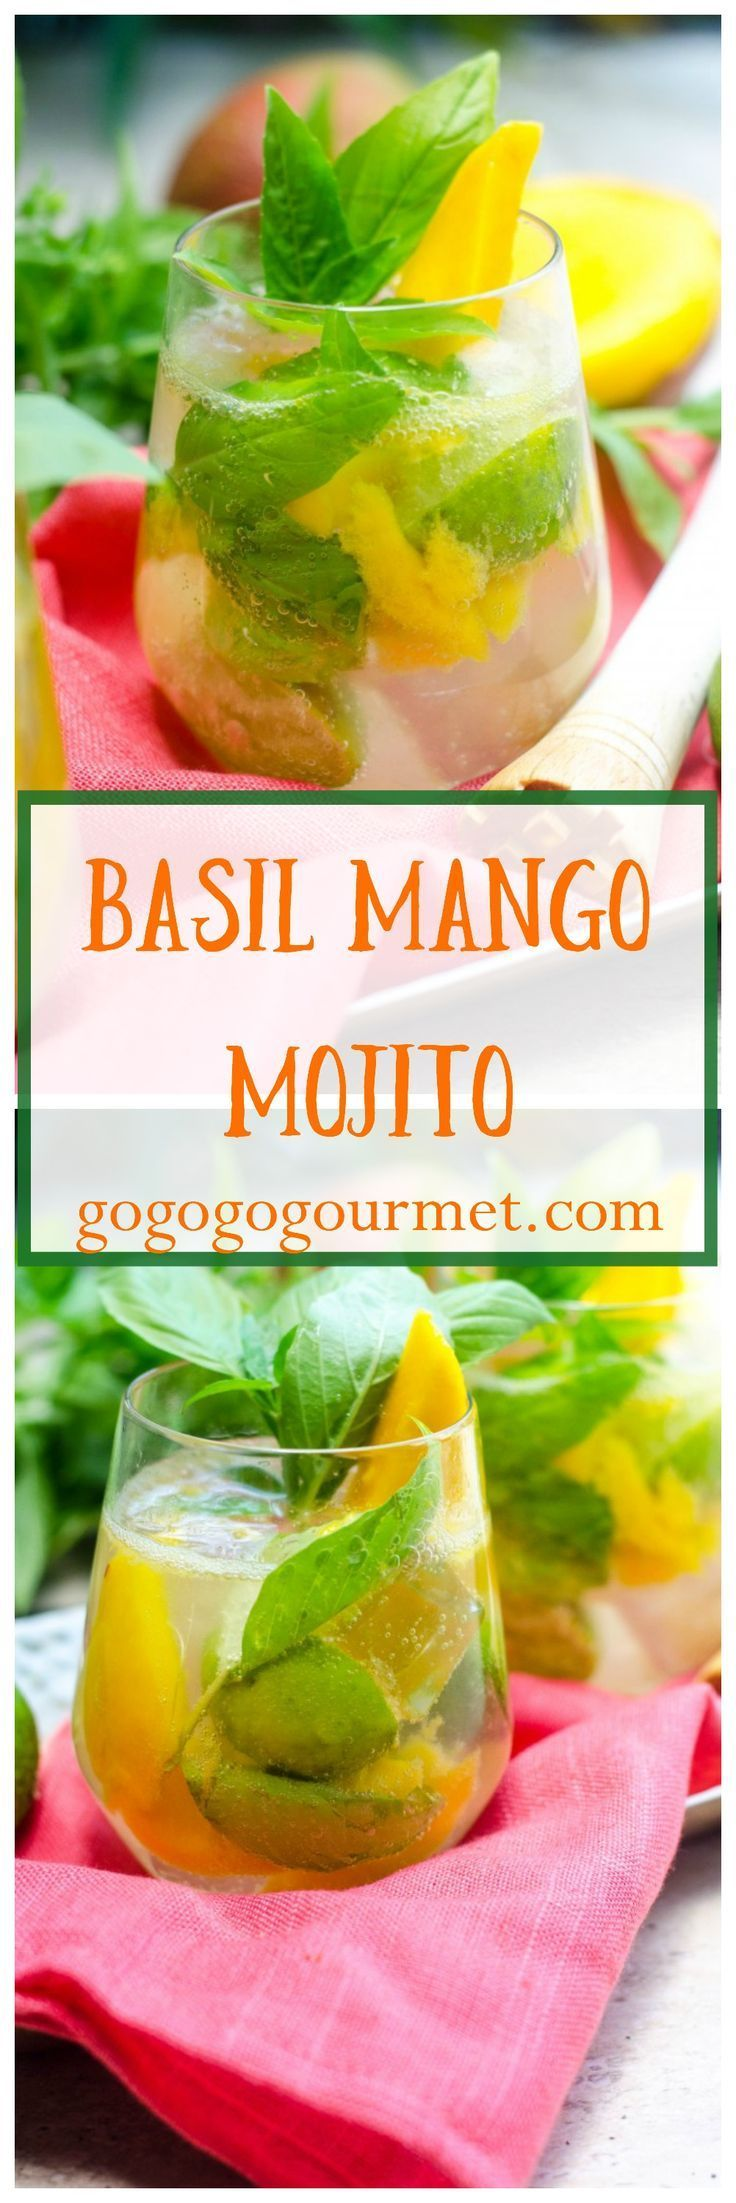 This classic gets a tropical twist thanks to sweet mango, and is a great way to use up some of that basil in your garden! Basil Mango Mojitos | Go Go Go Gourmet @gogogogourmet